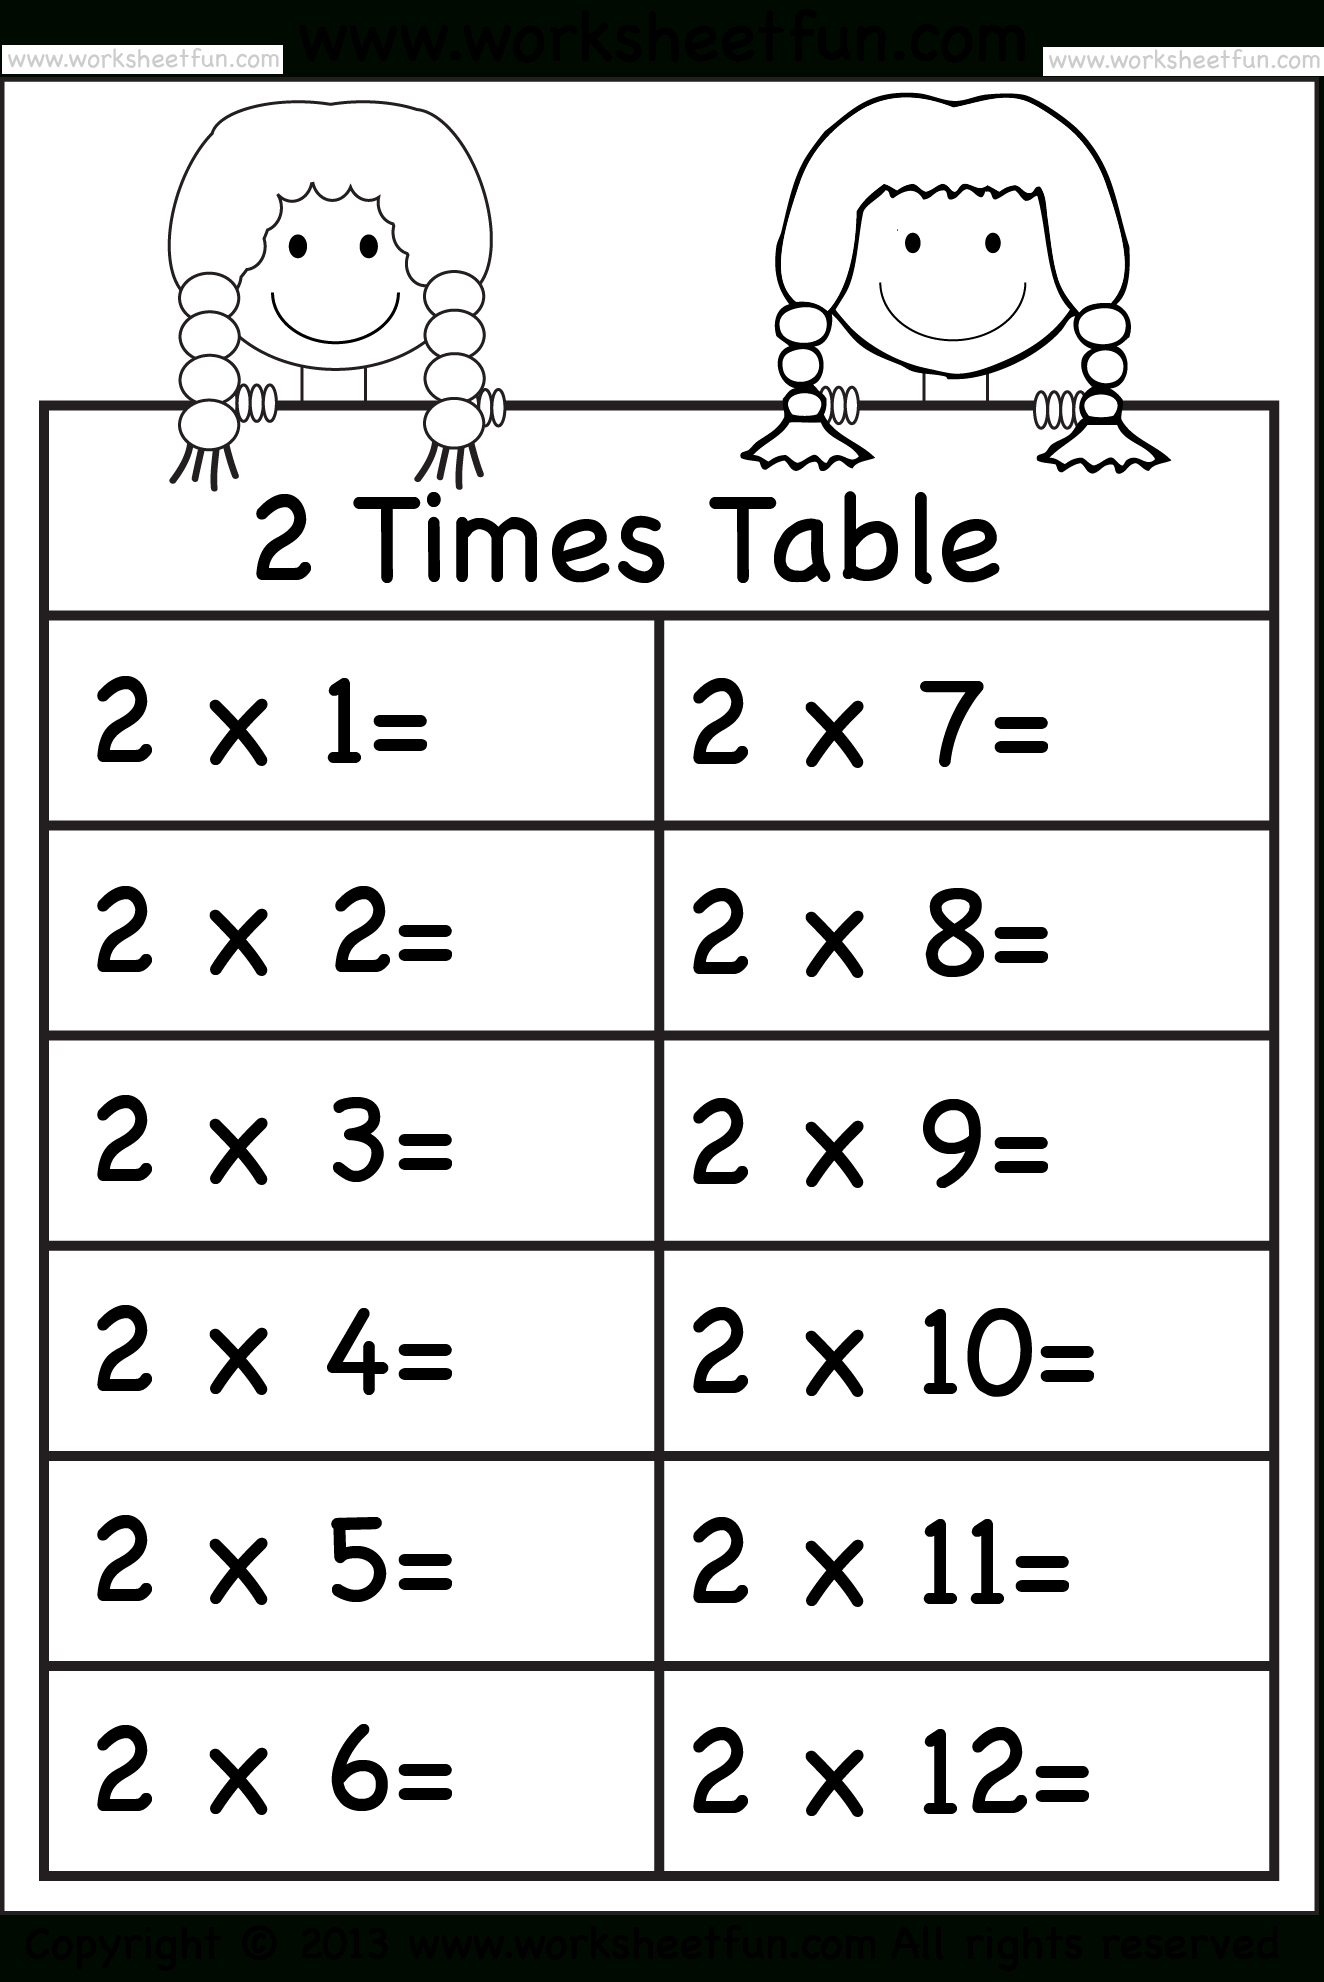 Times Tables Worksheets – 2, 3, 4, 5, 6, 7, 8, 9, 10, 11 And within Multiplication Worksheets 2 And 3 Times Tables